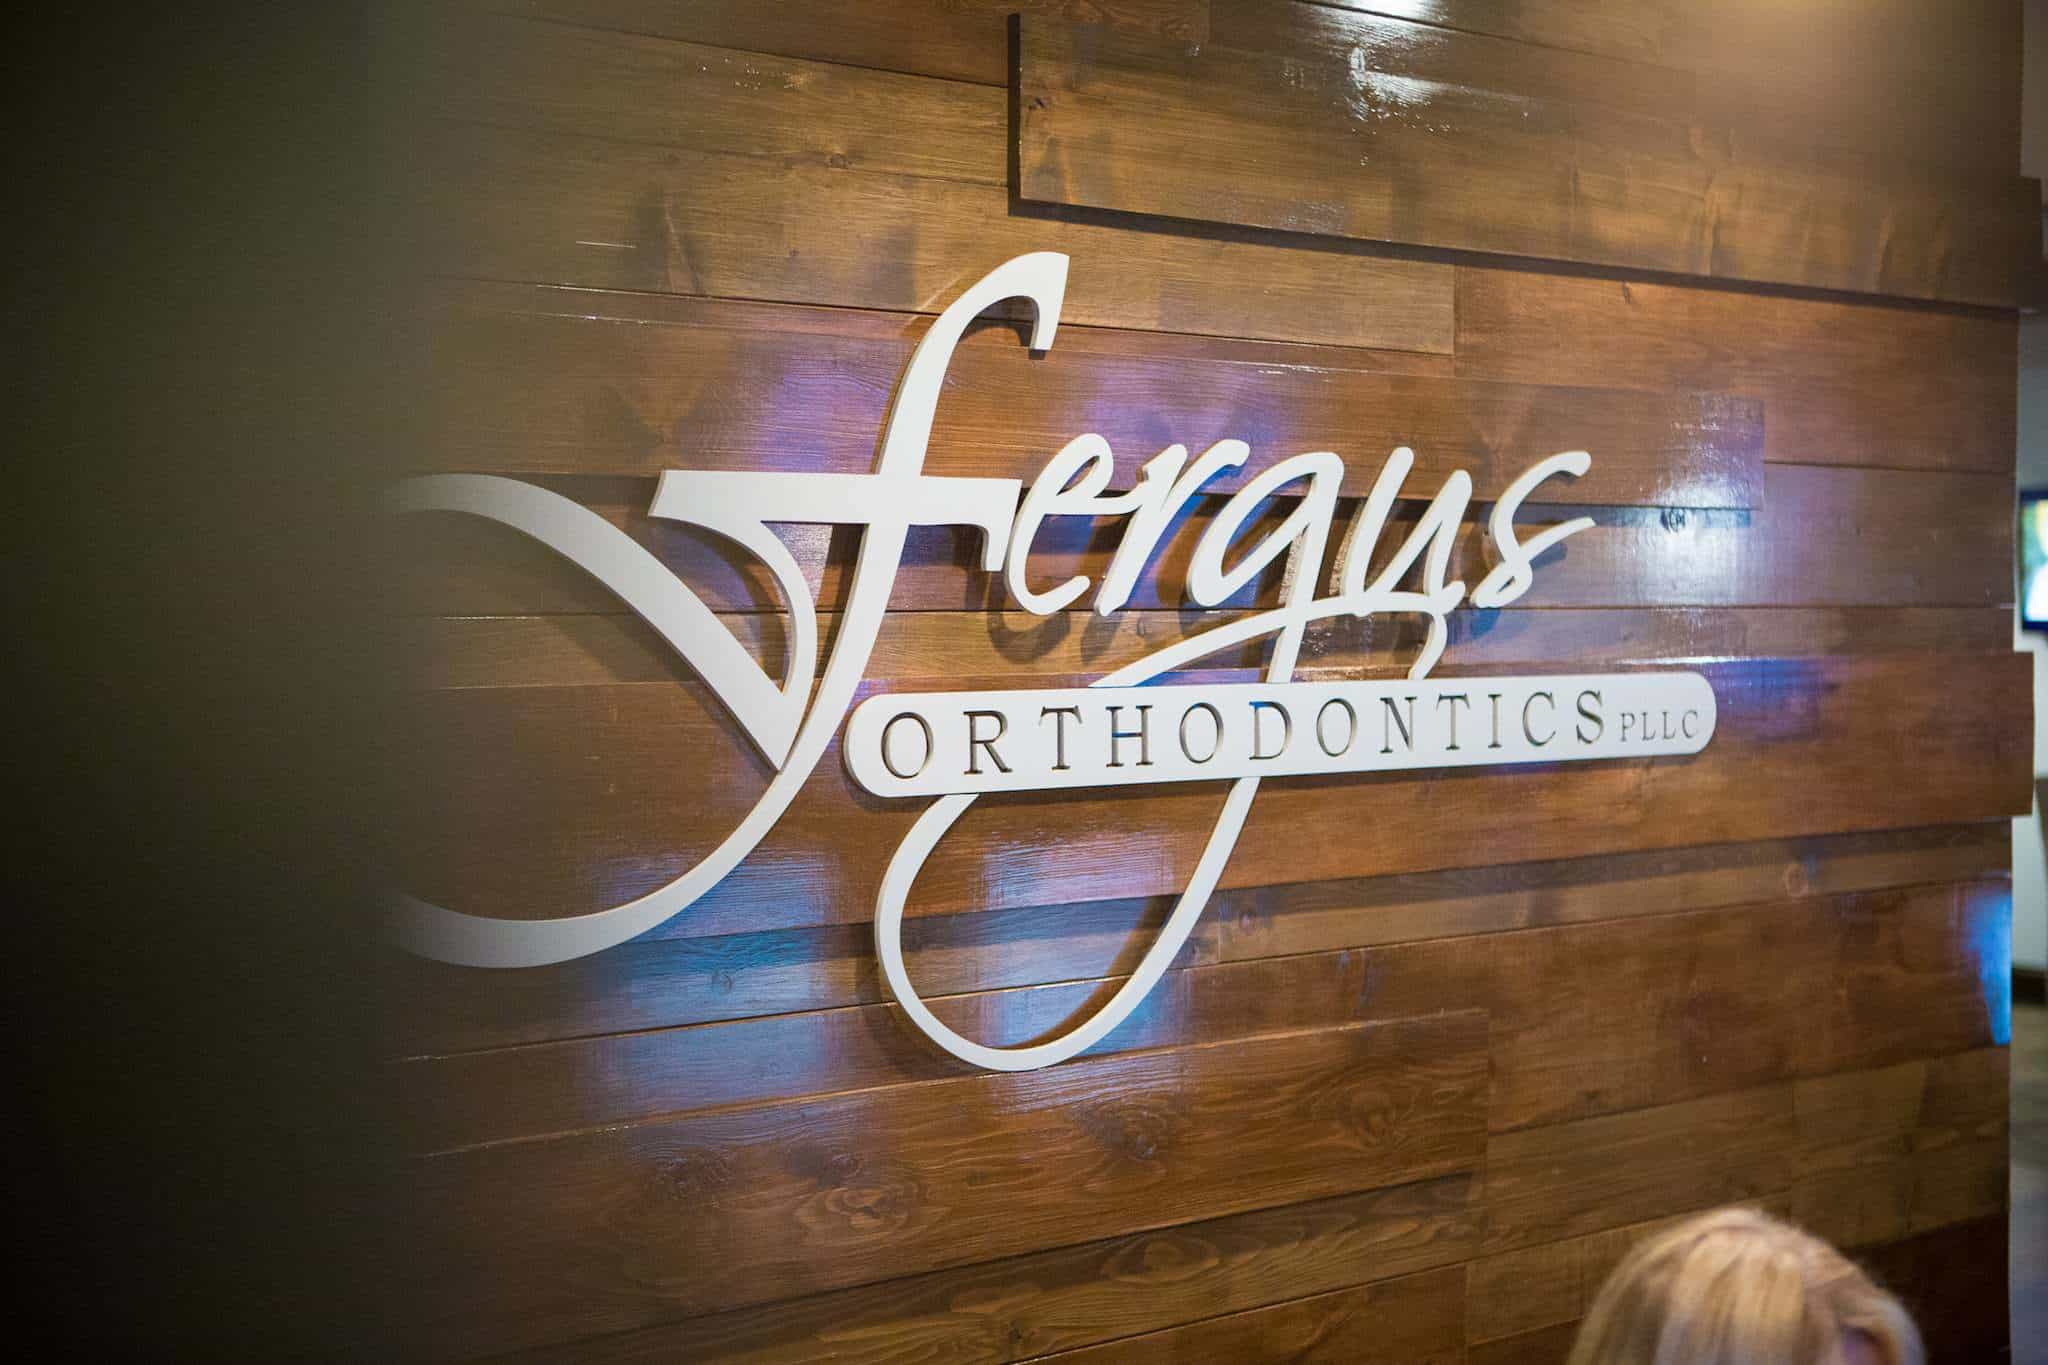 Fergus Orthodontics Jonesboro Arkansas General Shots 50 - Here's What to Expect at Your Next Appointment